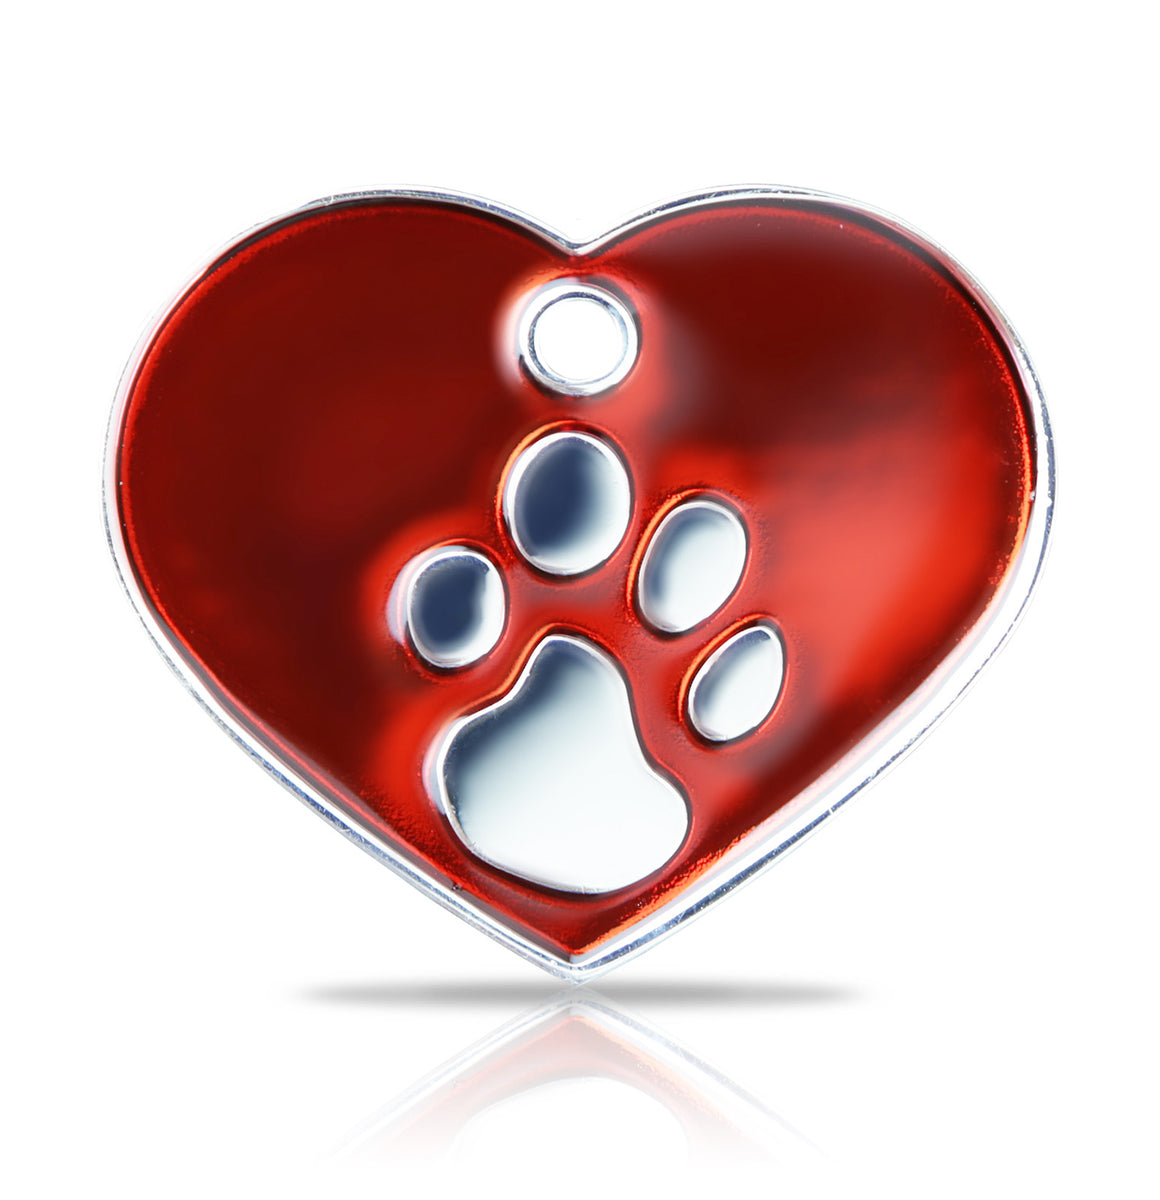 TaggIT Elegance Large Heart Red & Silver iMarc Pet Tag